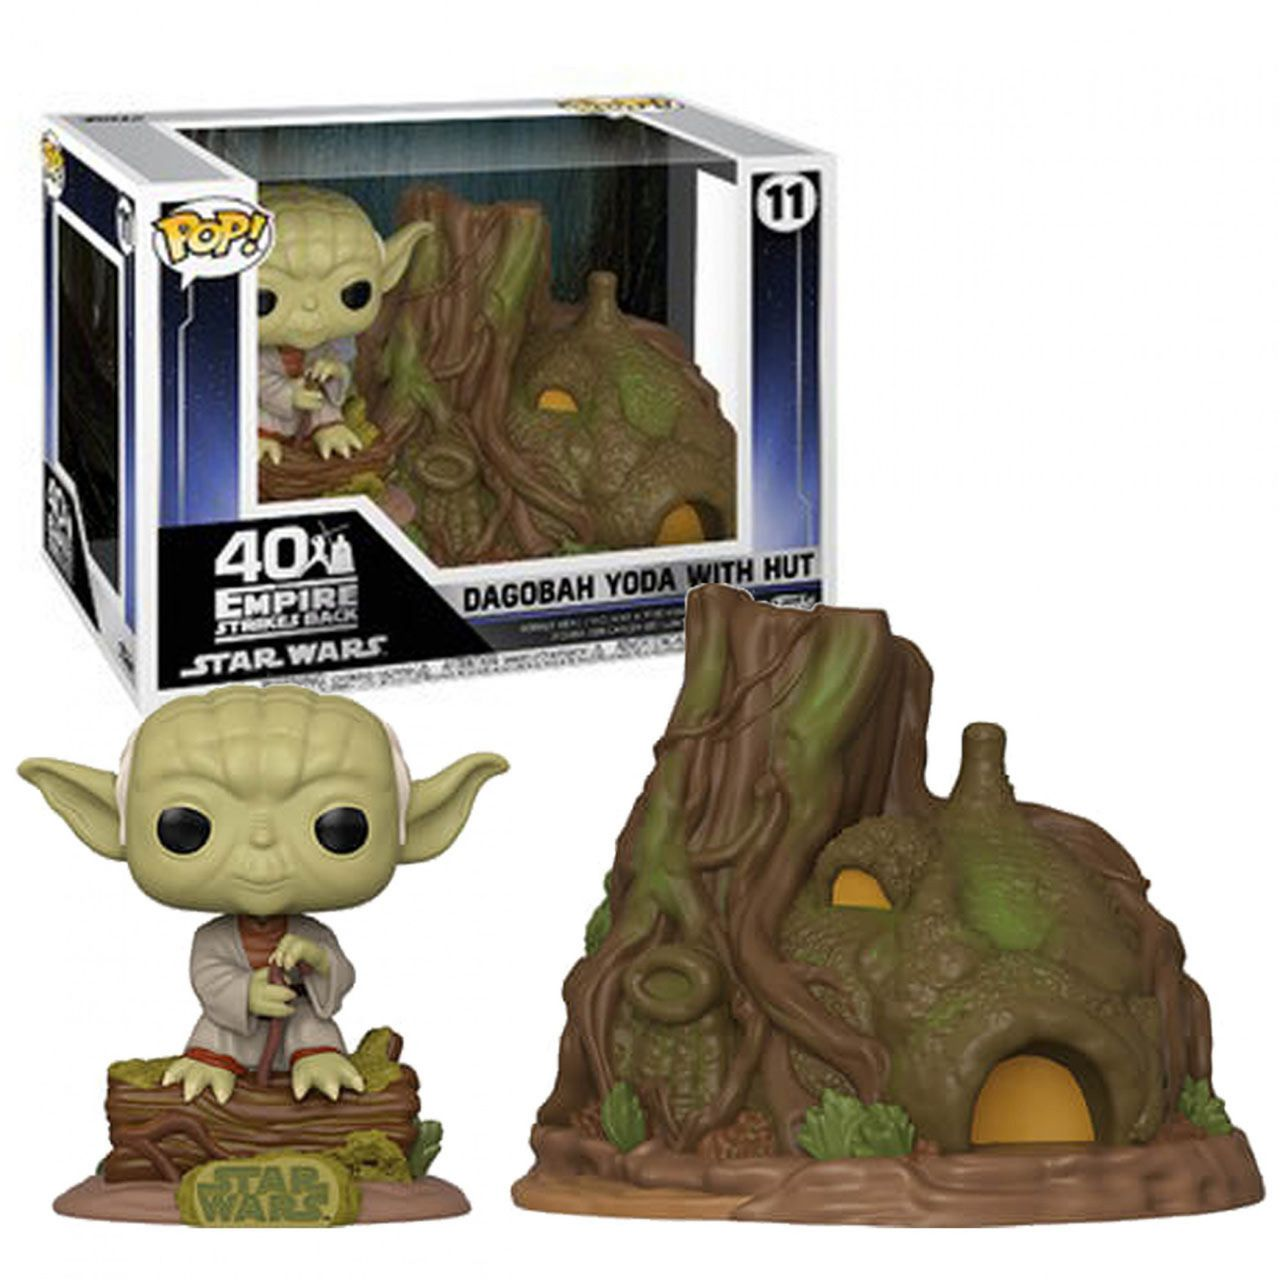 Funko Pop! Dagobah Yoda With Hut: O Império Contra-Ataca (The Empire Strikes Back) Star Wars #11 - Funko